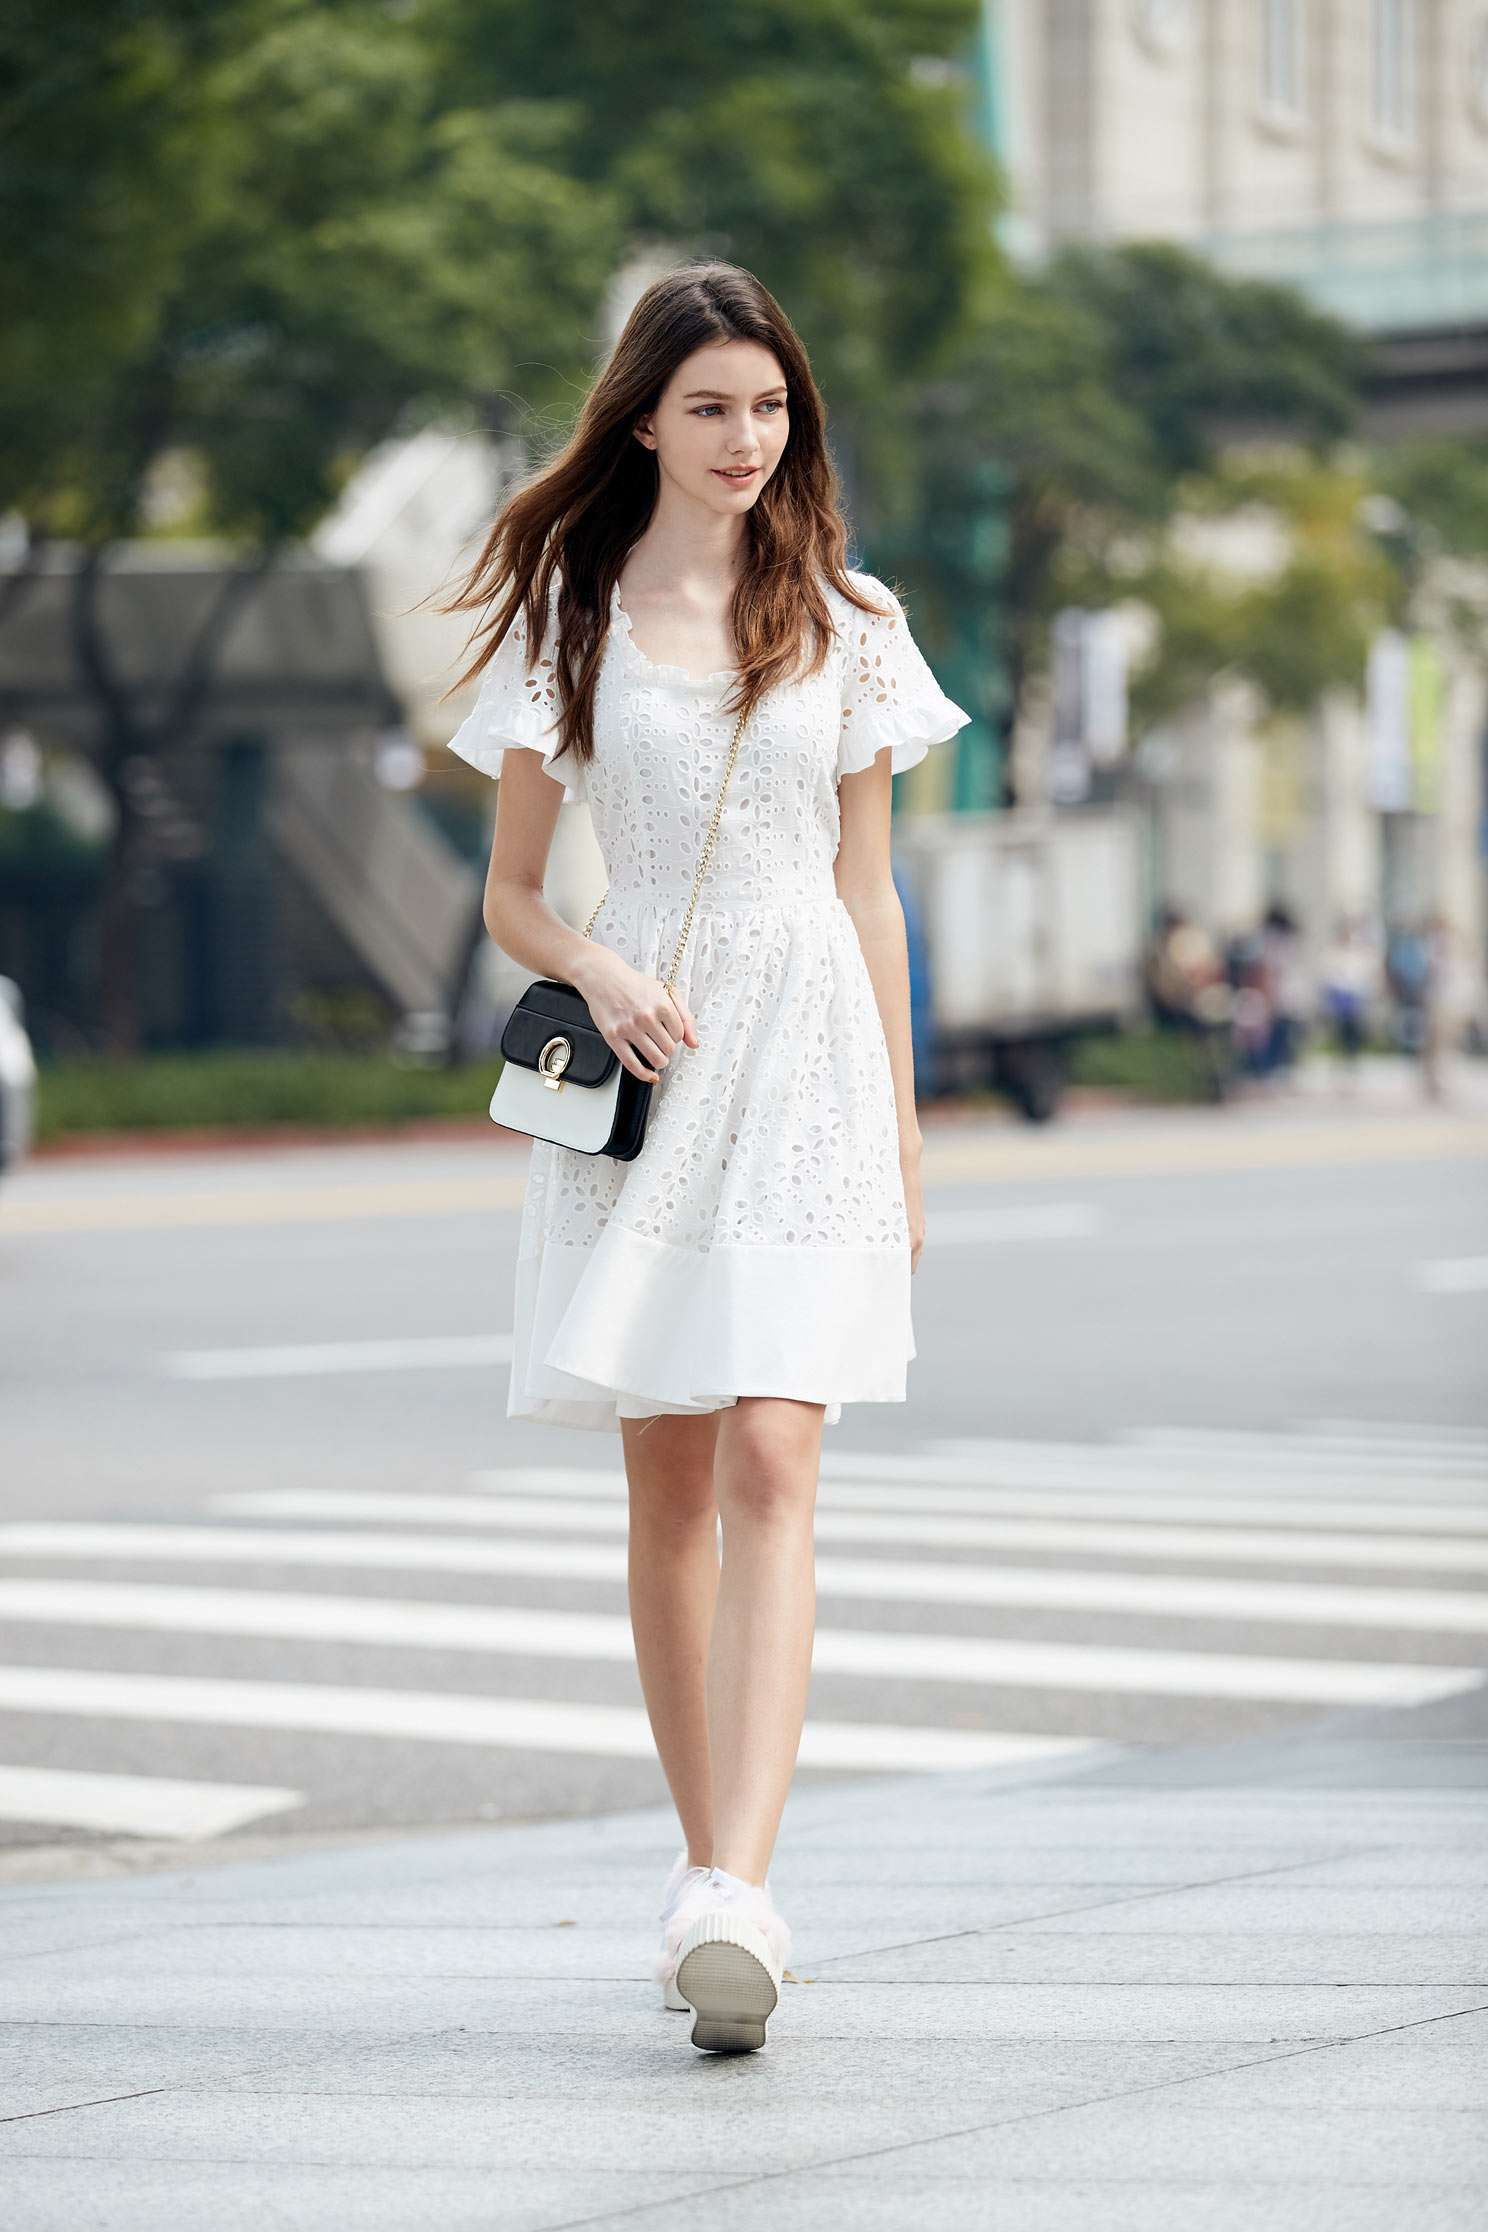 Elegantly carved short-sleeved dress,u-neckdress,cocktaildress,whitedress,shortsleevedress,lace,lacedress